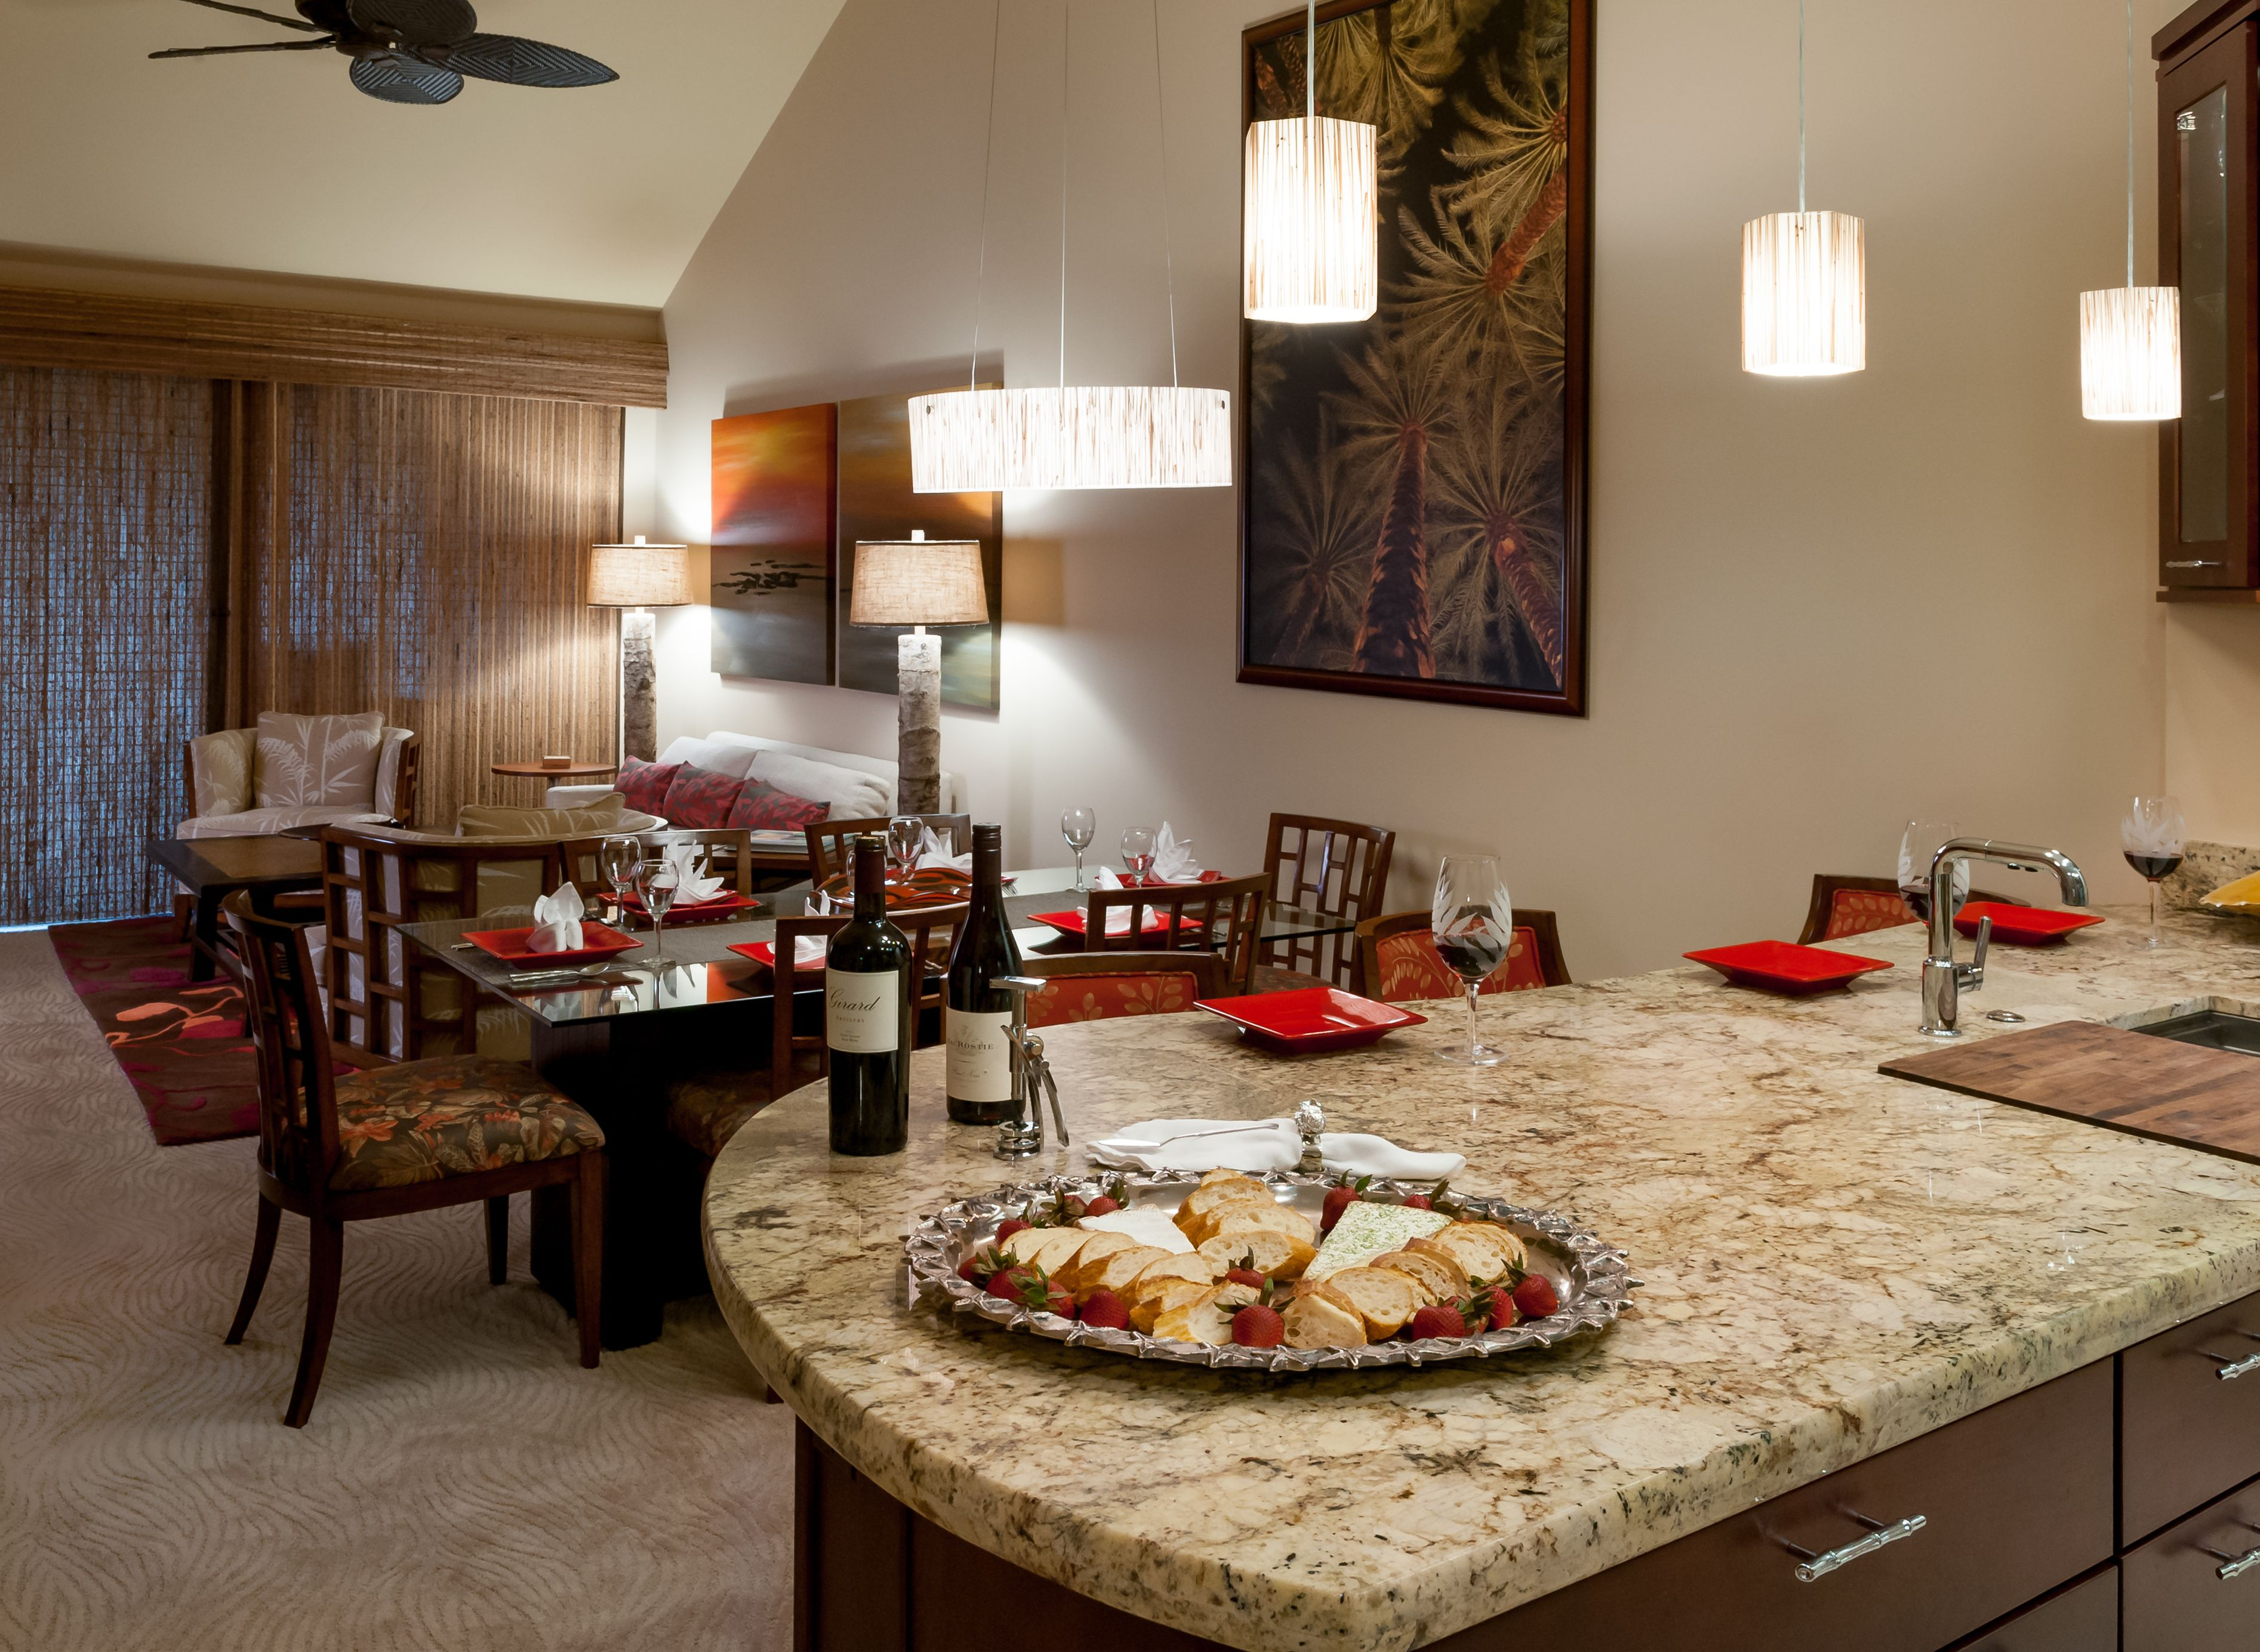 Dining Room Remodel Pictures Classy After Wailea Great Room Remodelbamboo Thatch Pendants New 2018